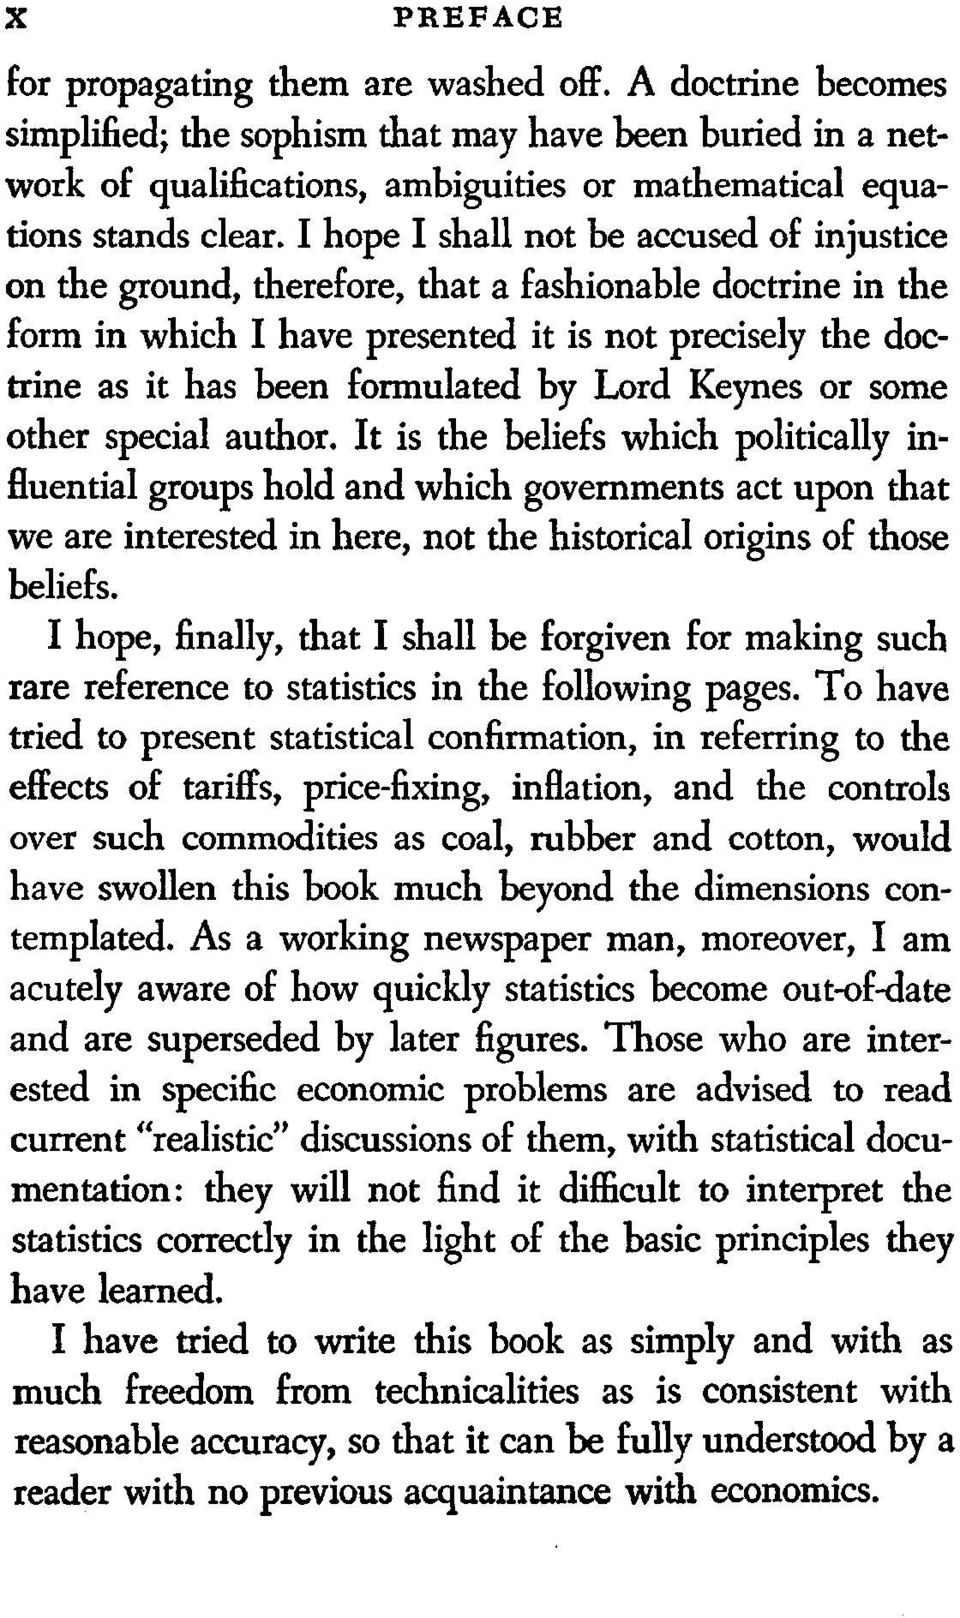 Lord Keynes or some other special author.